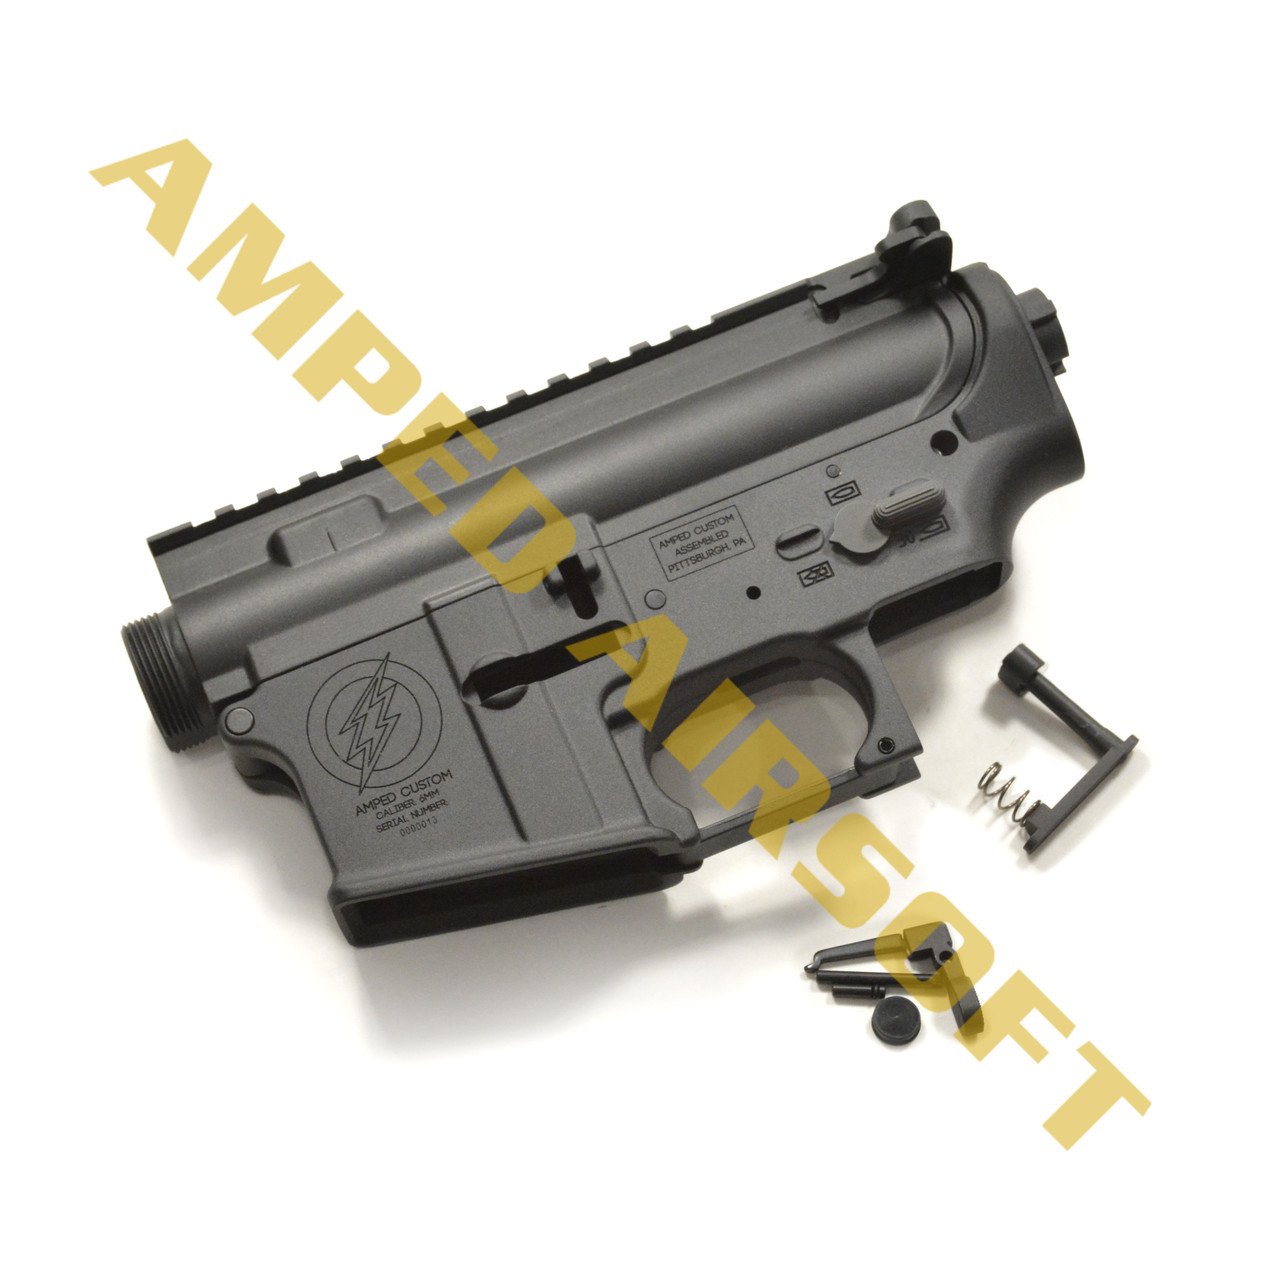 amped custom amped m4 metal body receiver kit by vfc__27314.1477423855?c=2 vfc buffer tube kit for aeg (milspec) amped airsoft  at alyssarenee.co